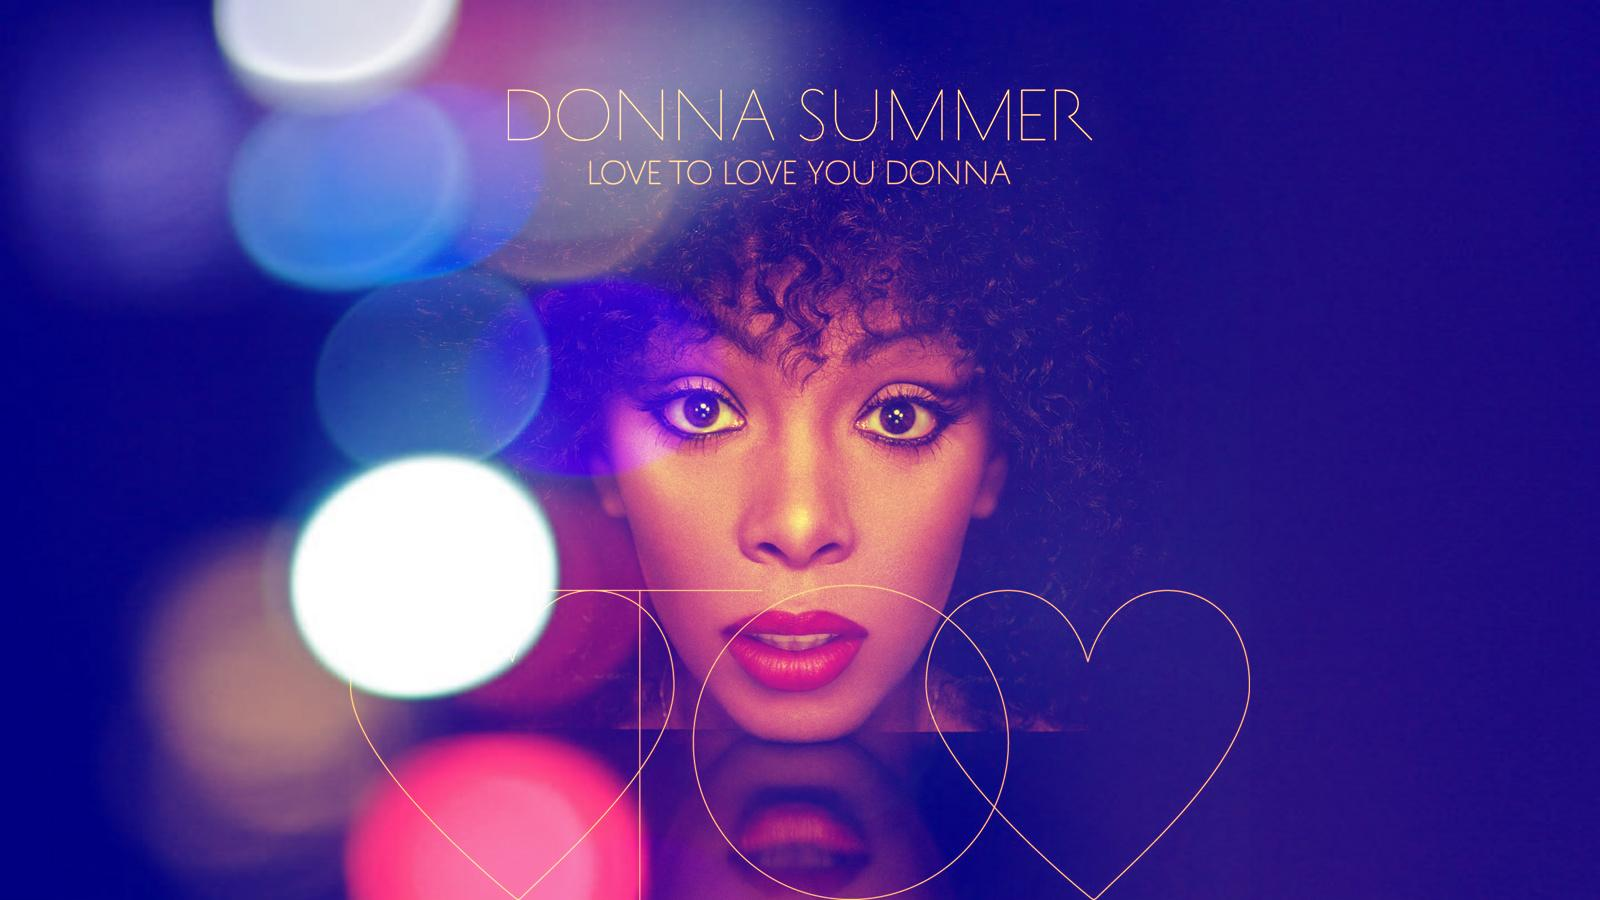 images of donna summer